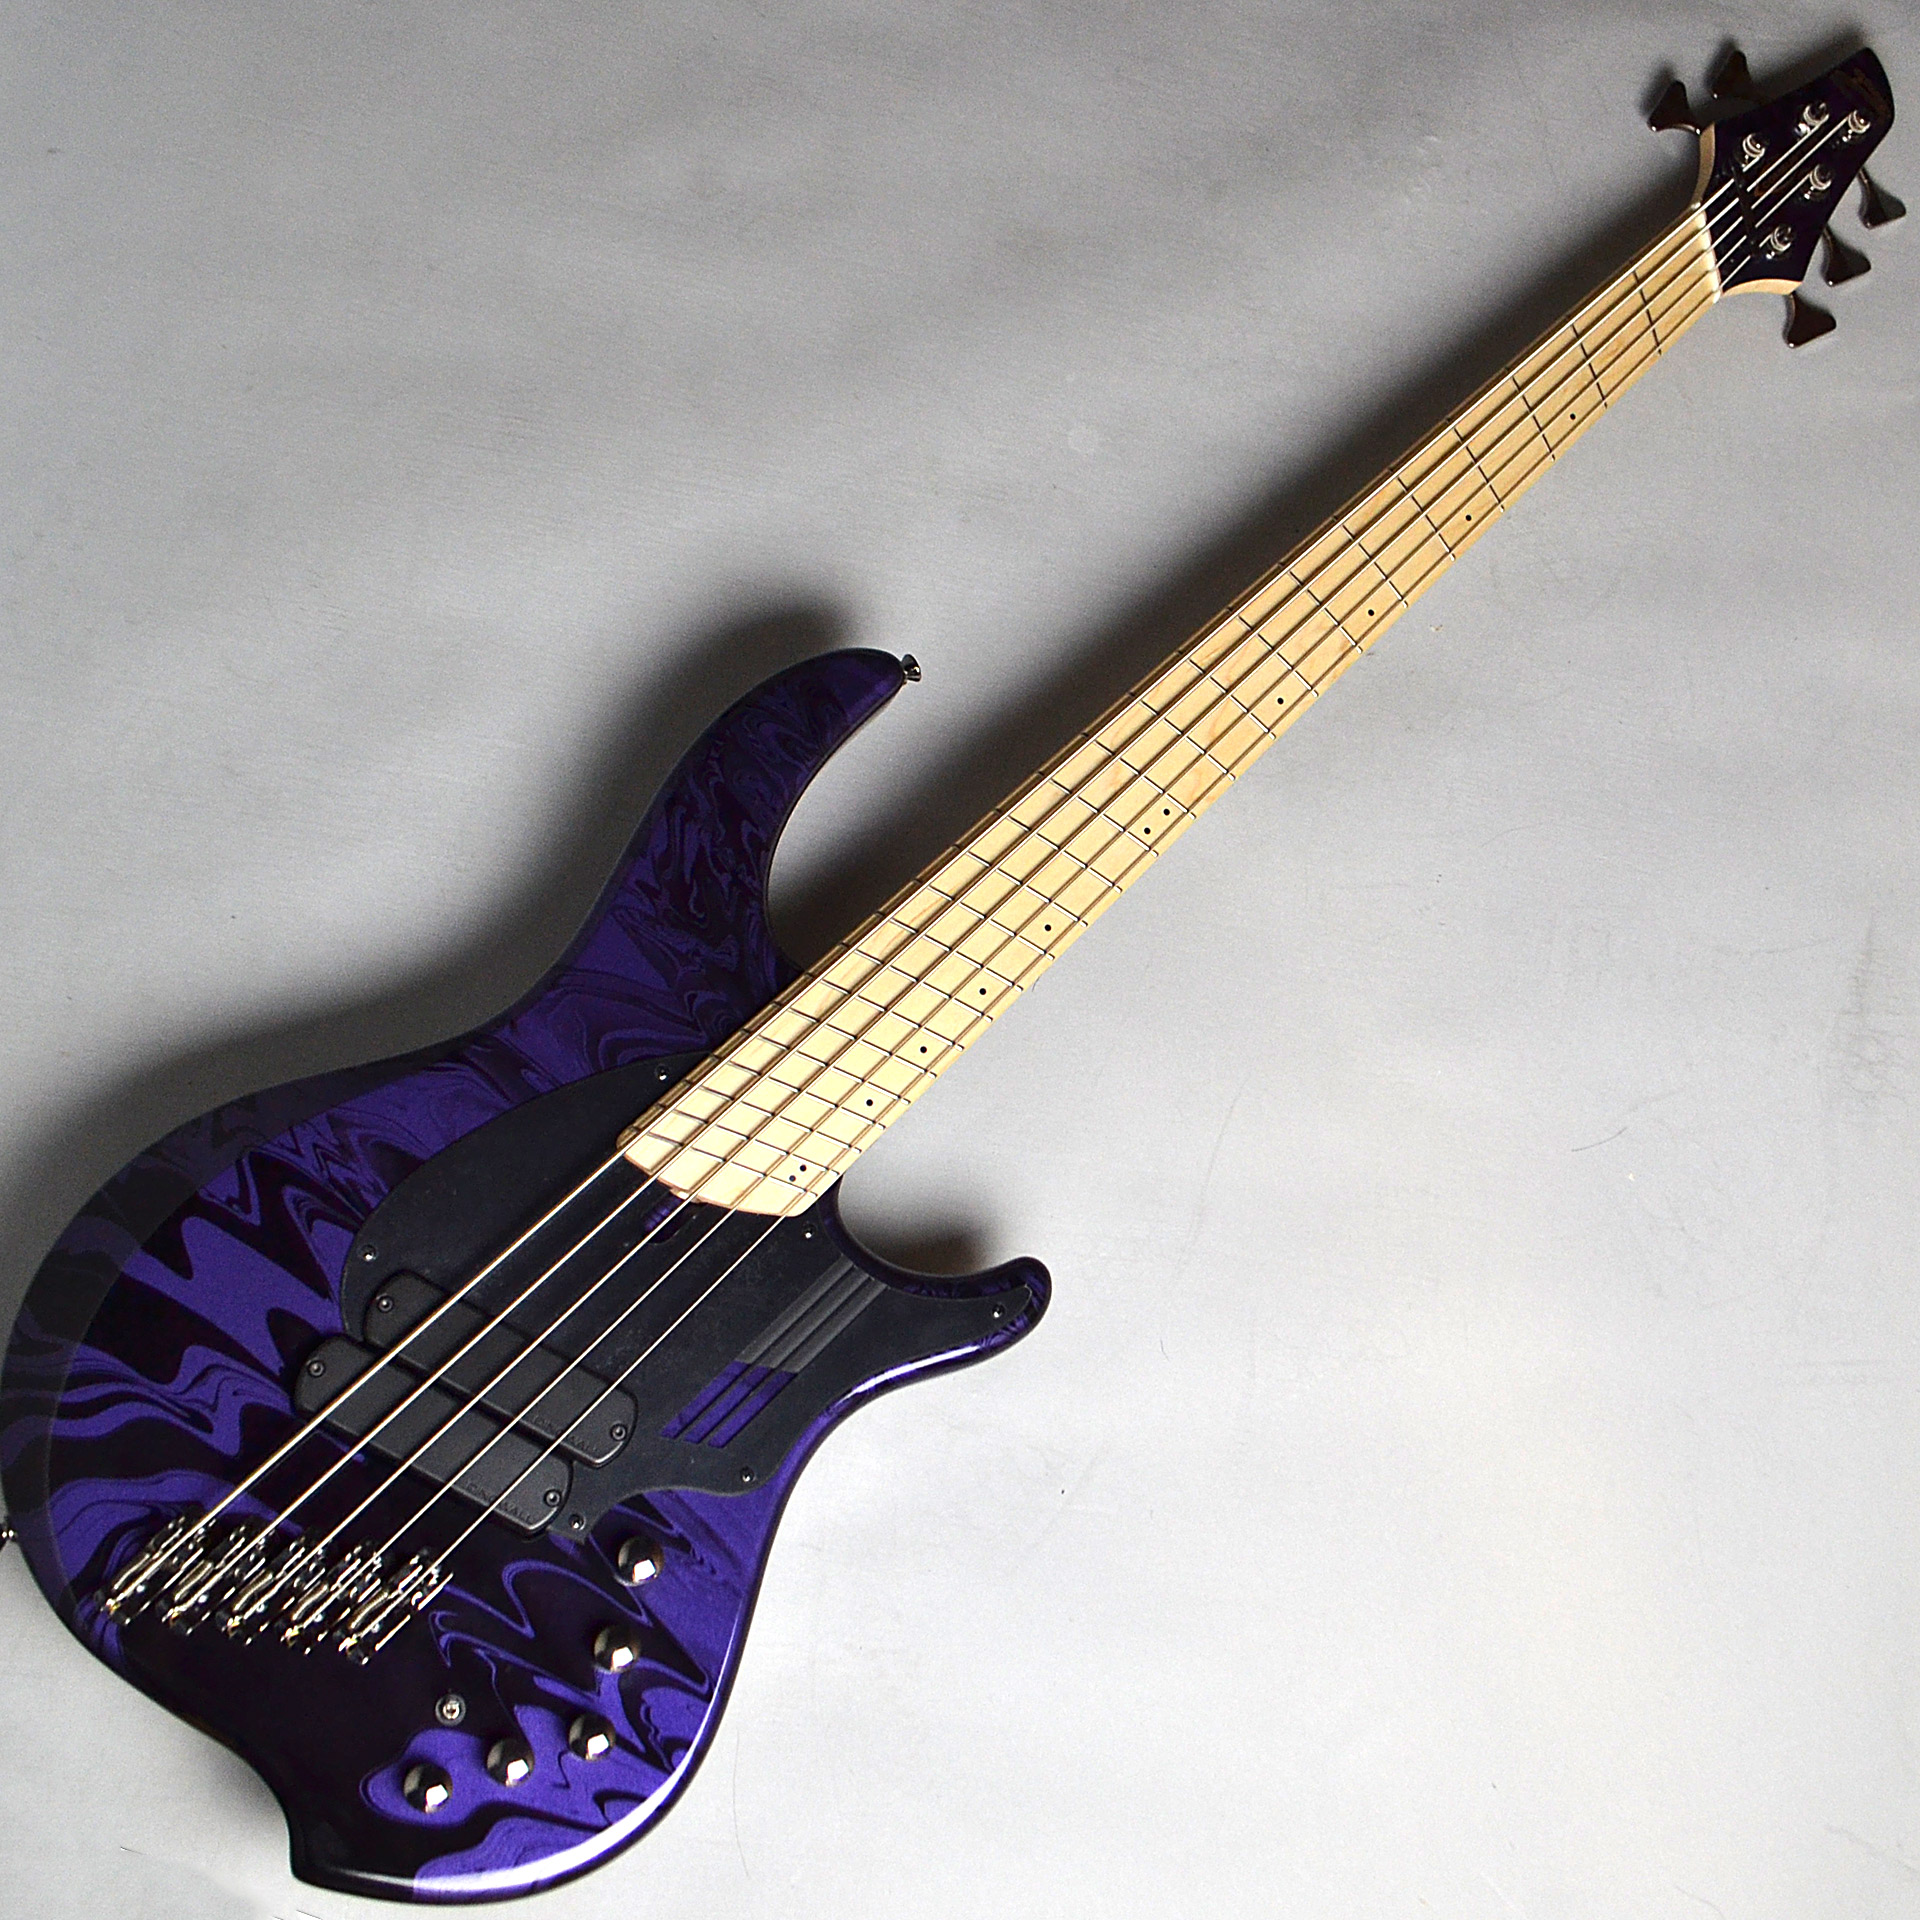 NG-2 5st Adam Nolly Getgood Signature Modelのボディトップ-アップ画像